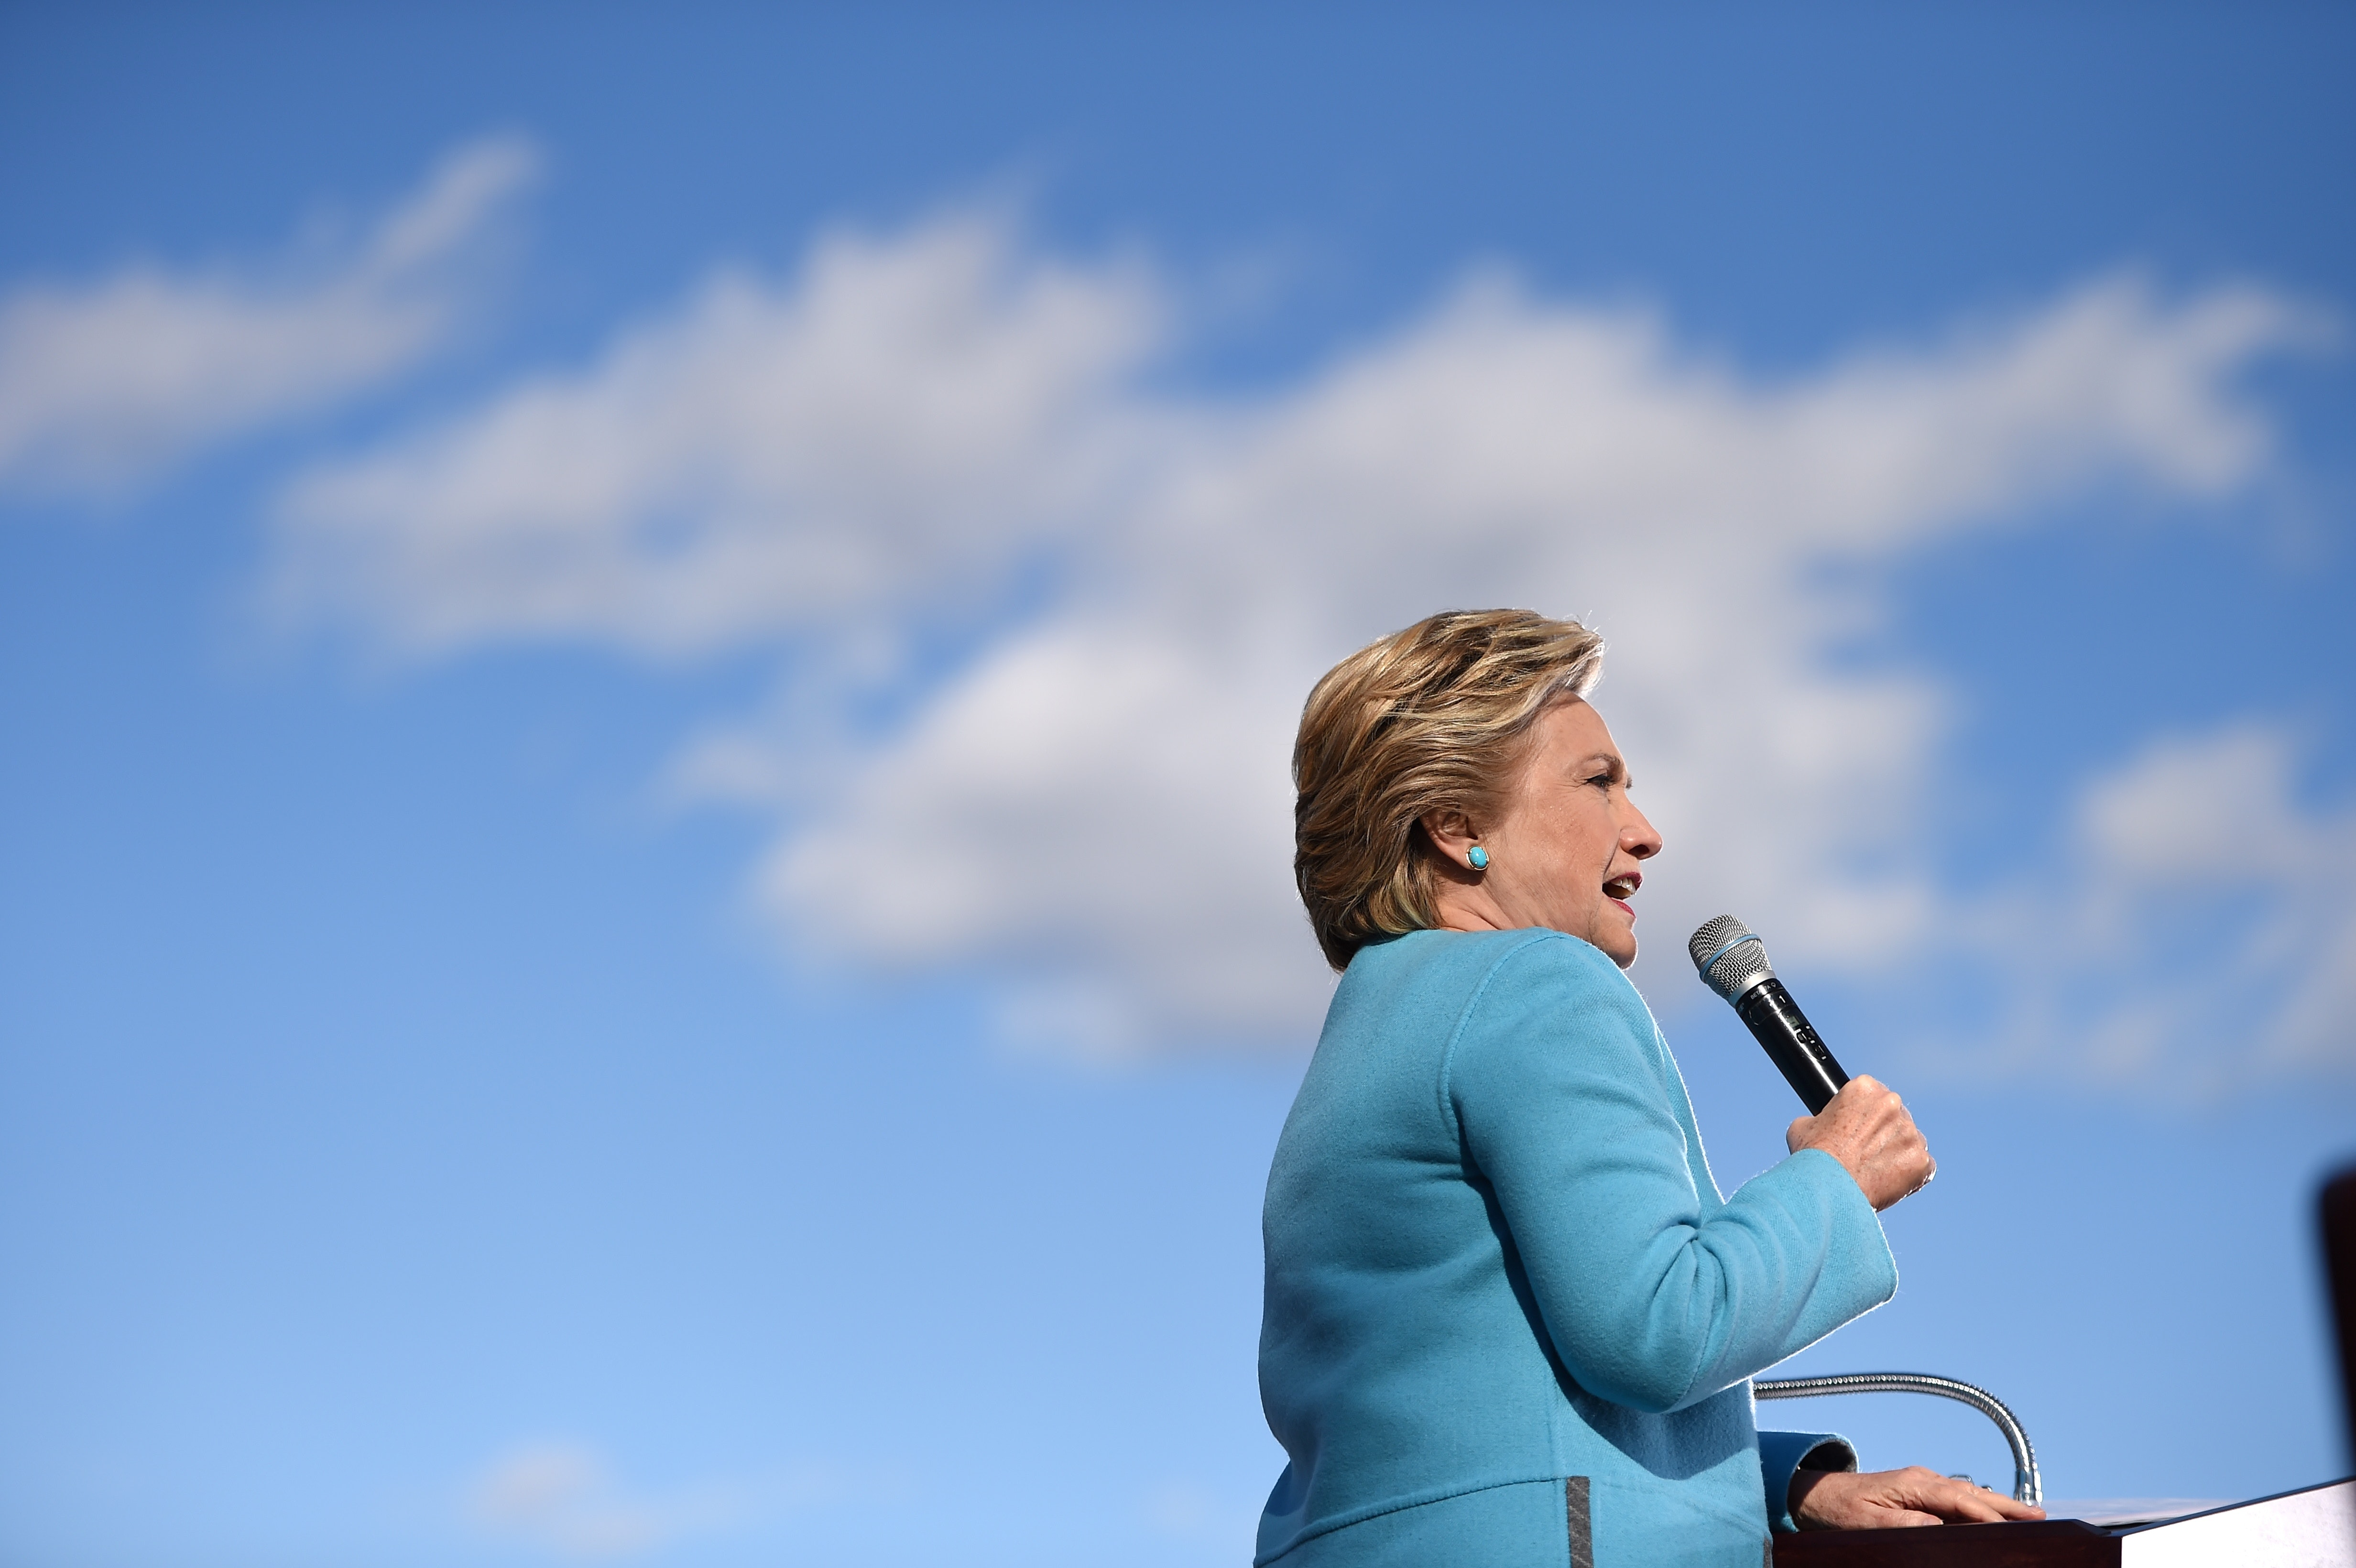 GfK Poll: Clinton lead fueled by increased enthusiasm